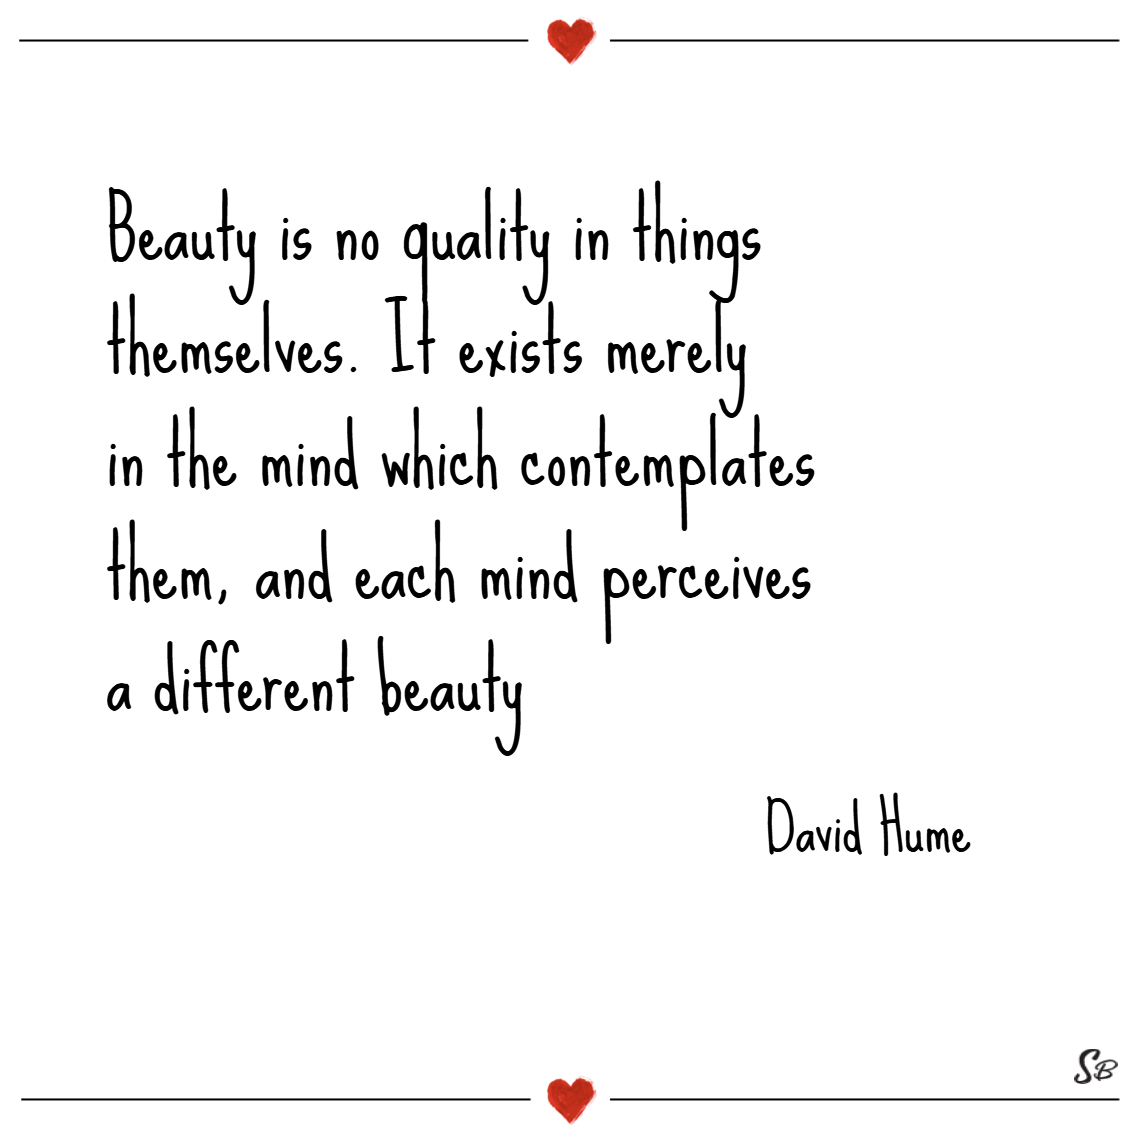 Beauty is no quality in things themselves. it exists merely in the mind which contemplates them, and each mind perceives a different beauty. – david hume